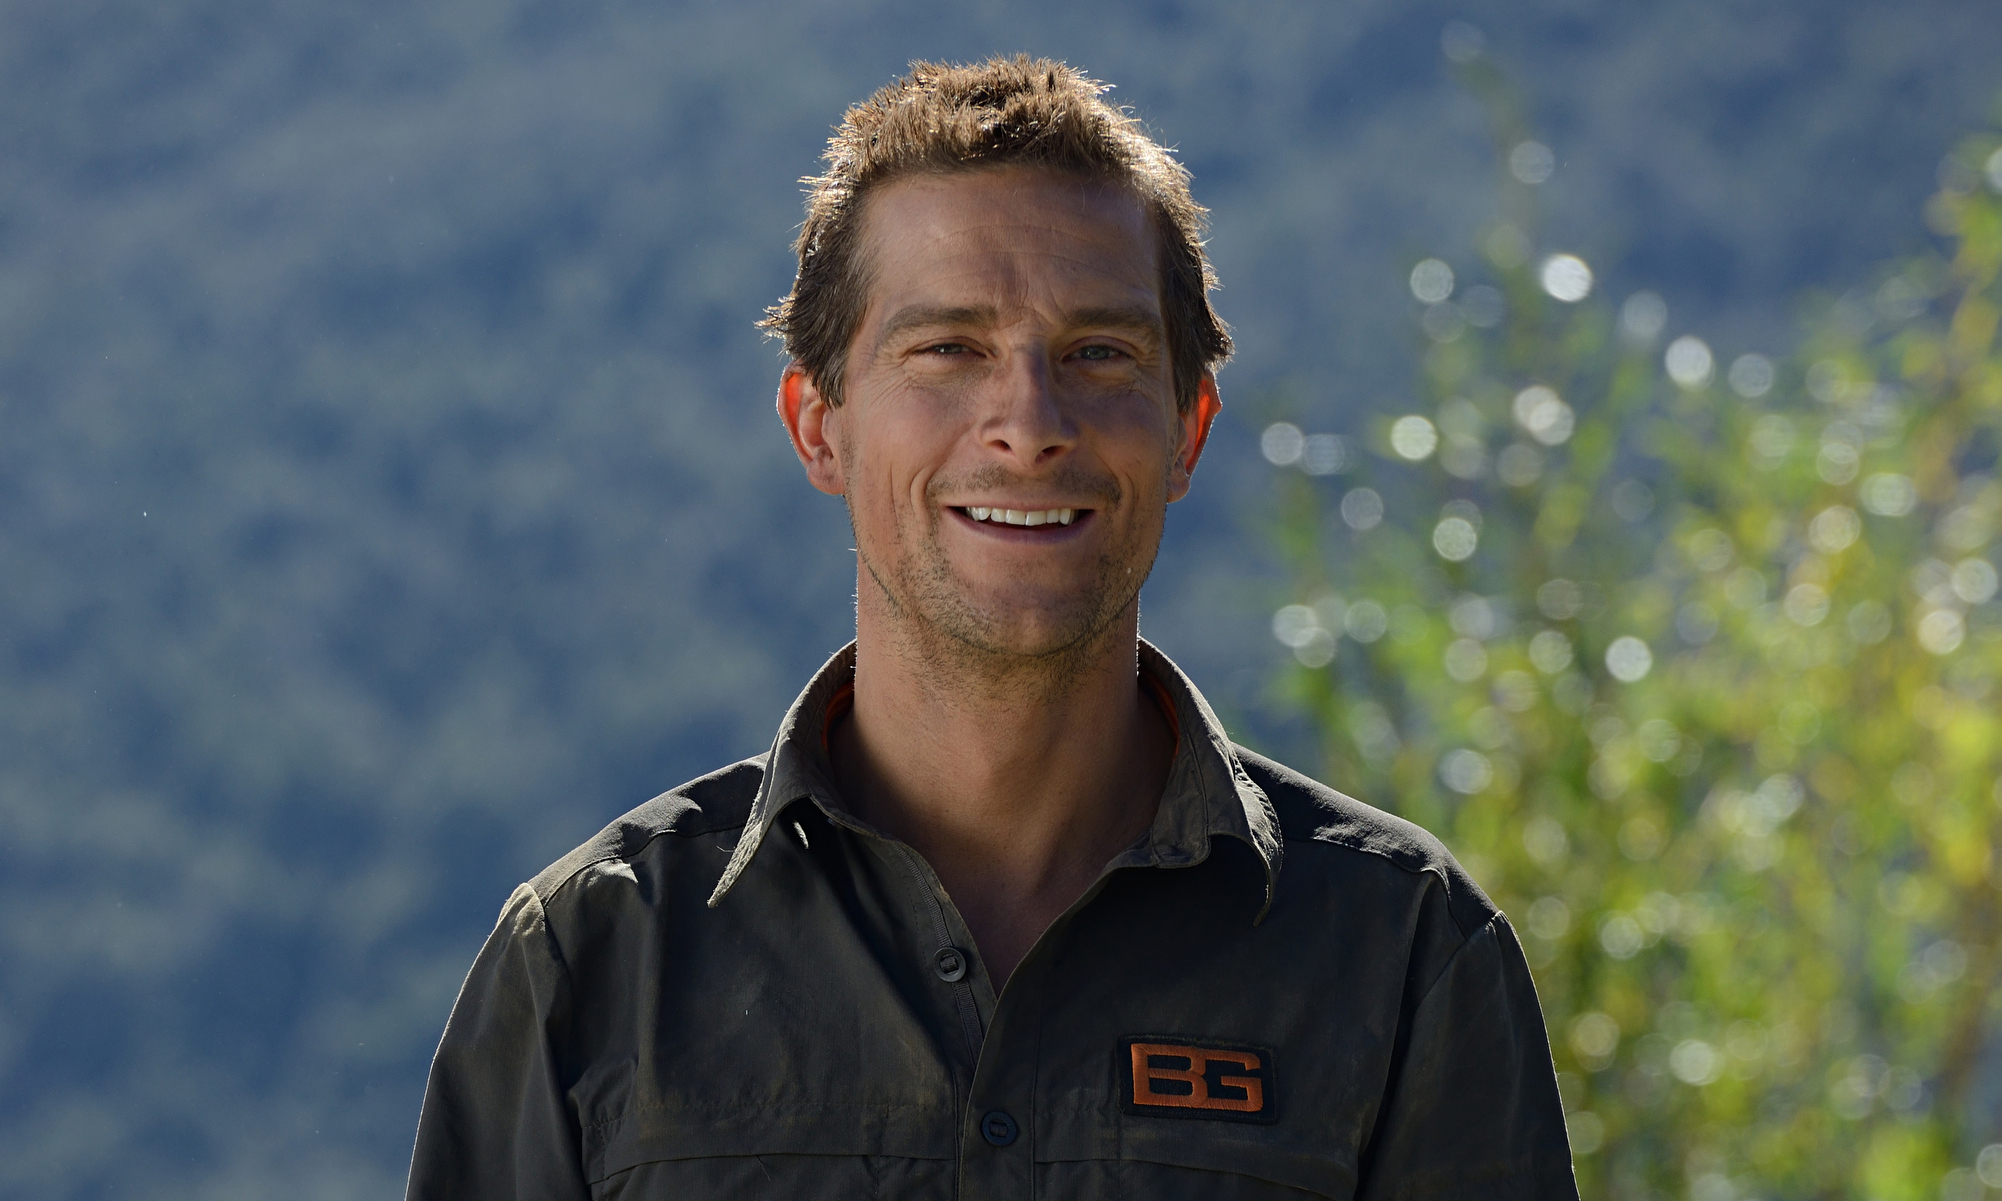 Bear Grylls Faces A Tough New Challenge Stop Making